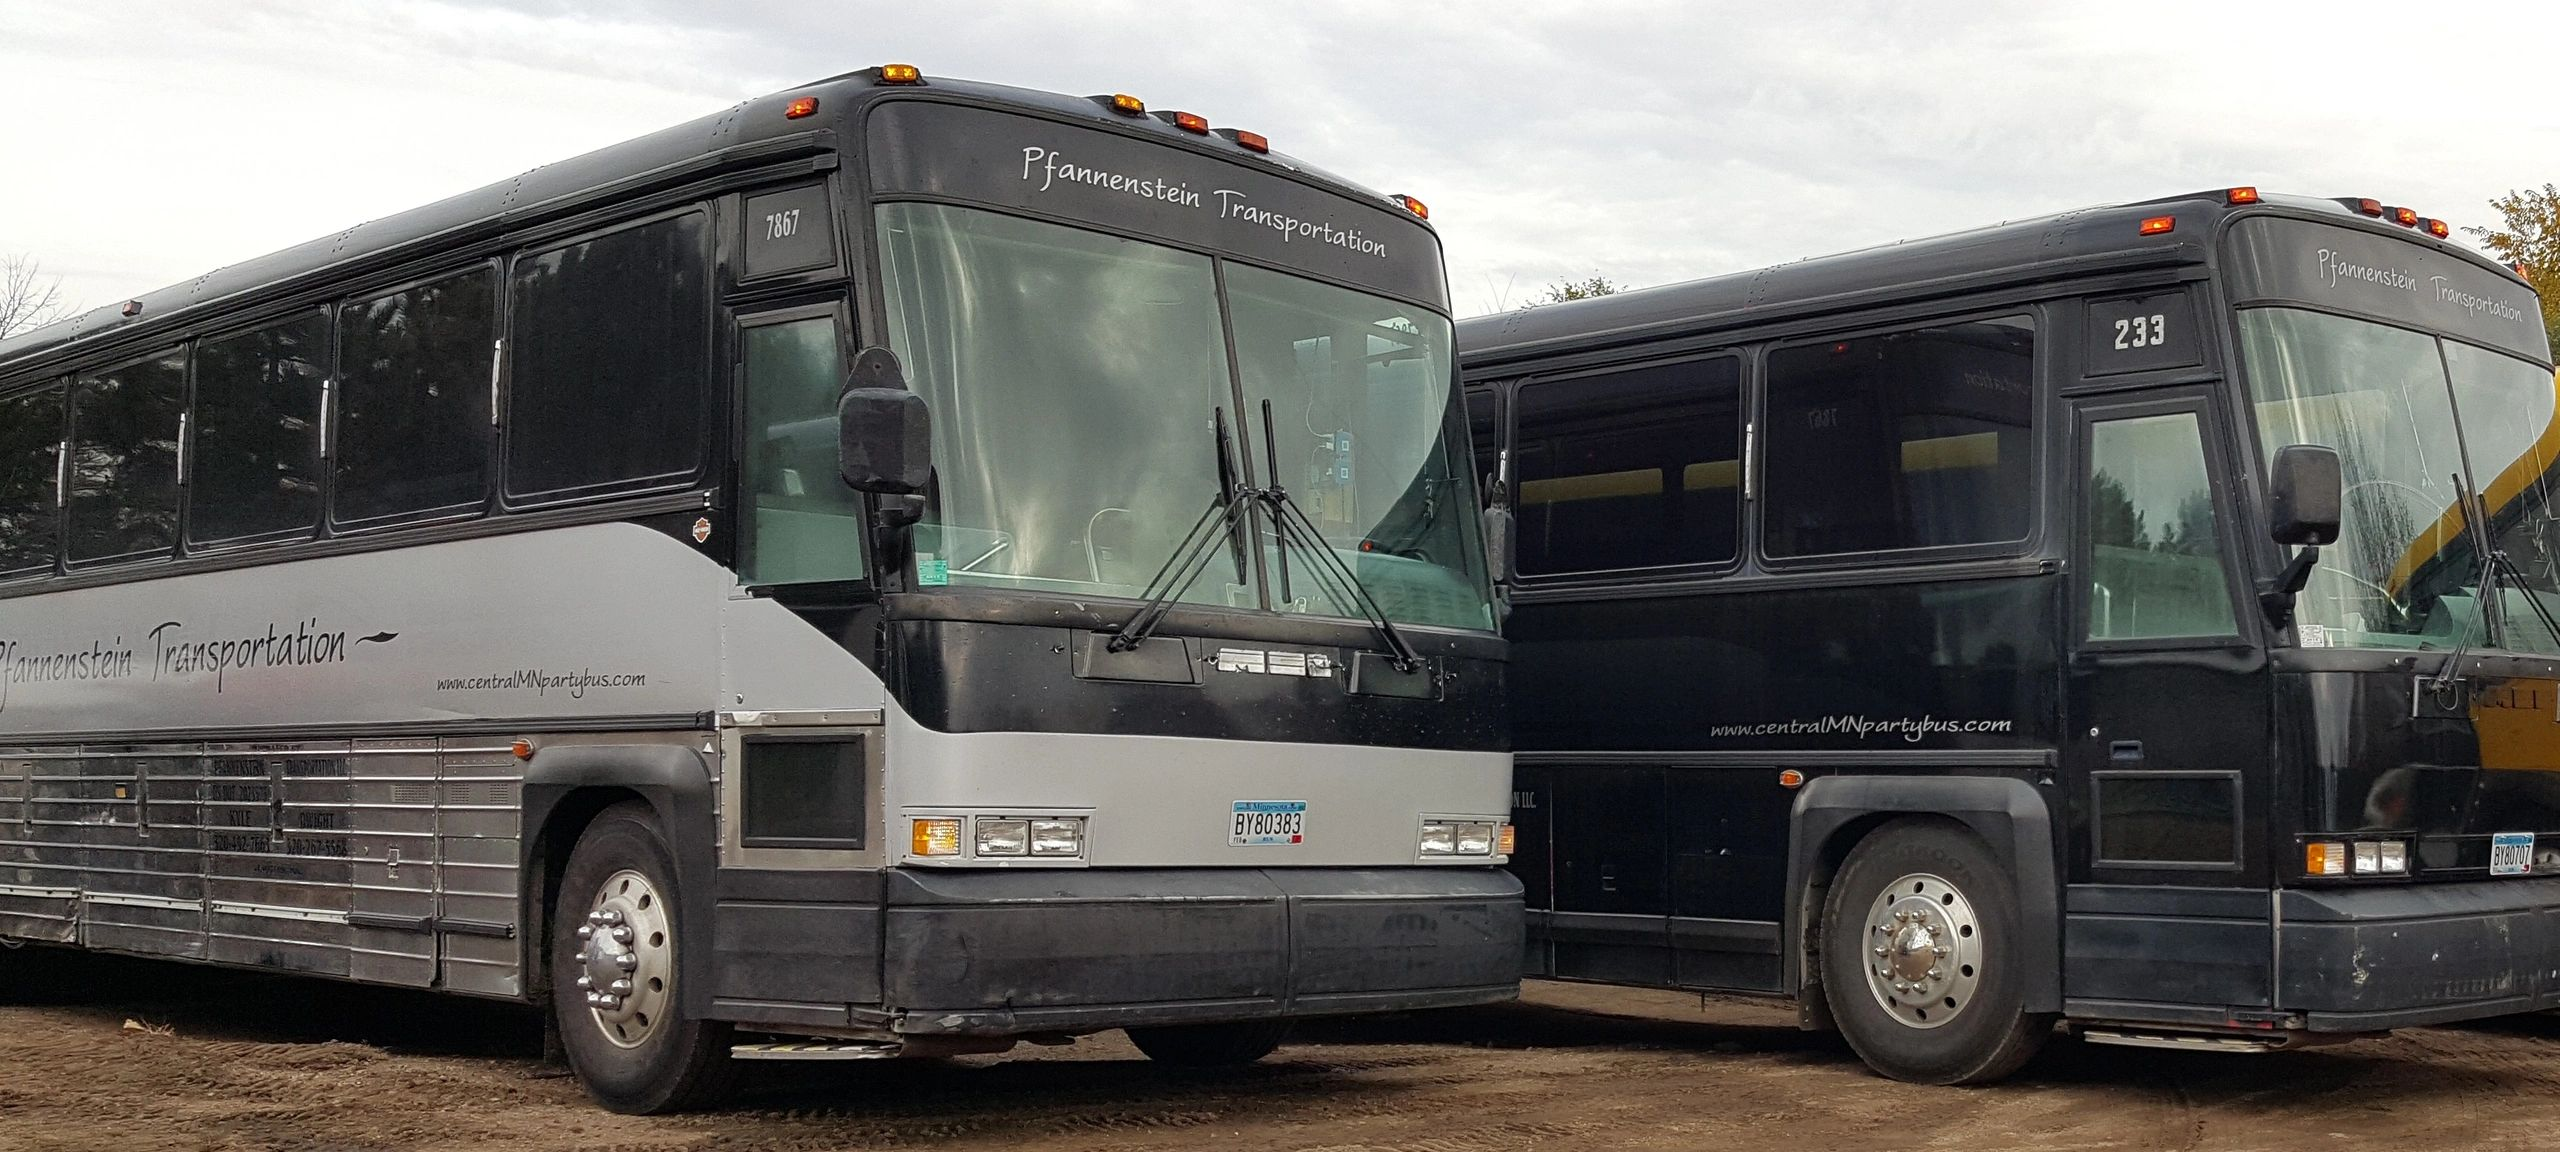 Both of our high end luxury limo buses are built on an MCI bus chassis offering the smoothest ride.